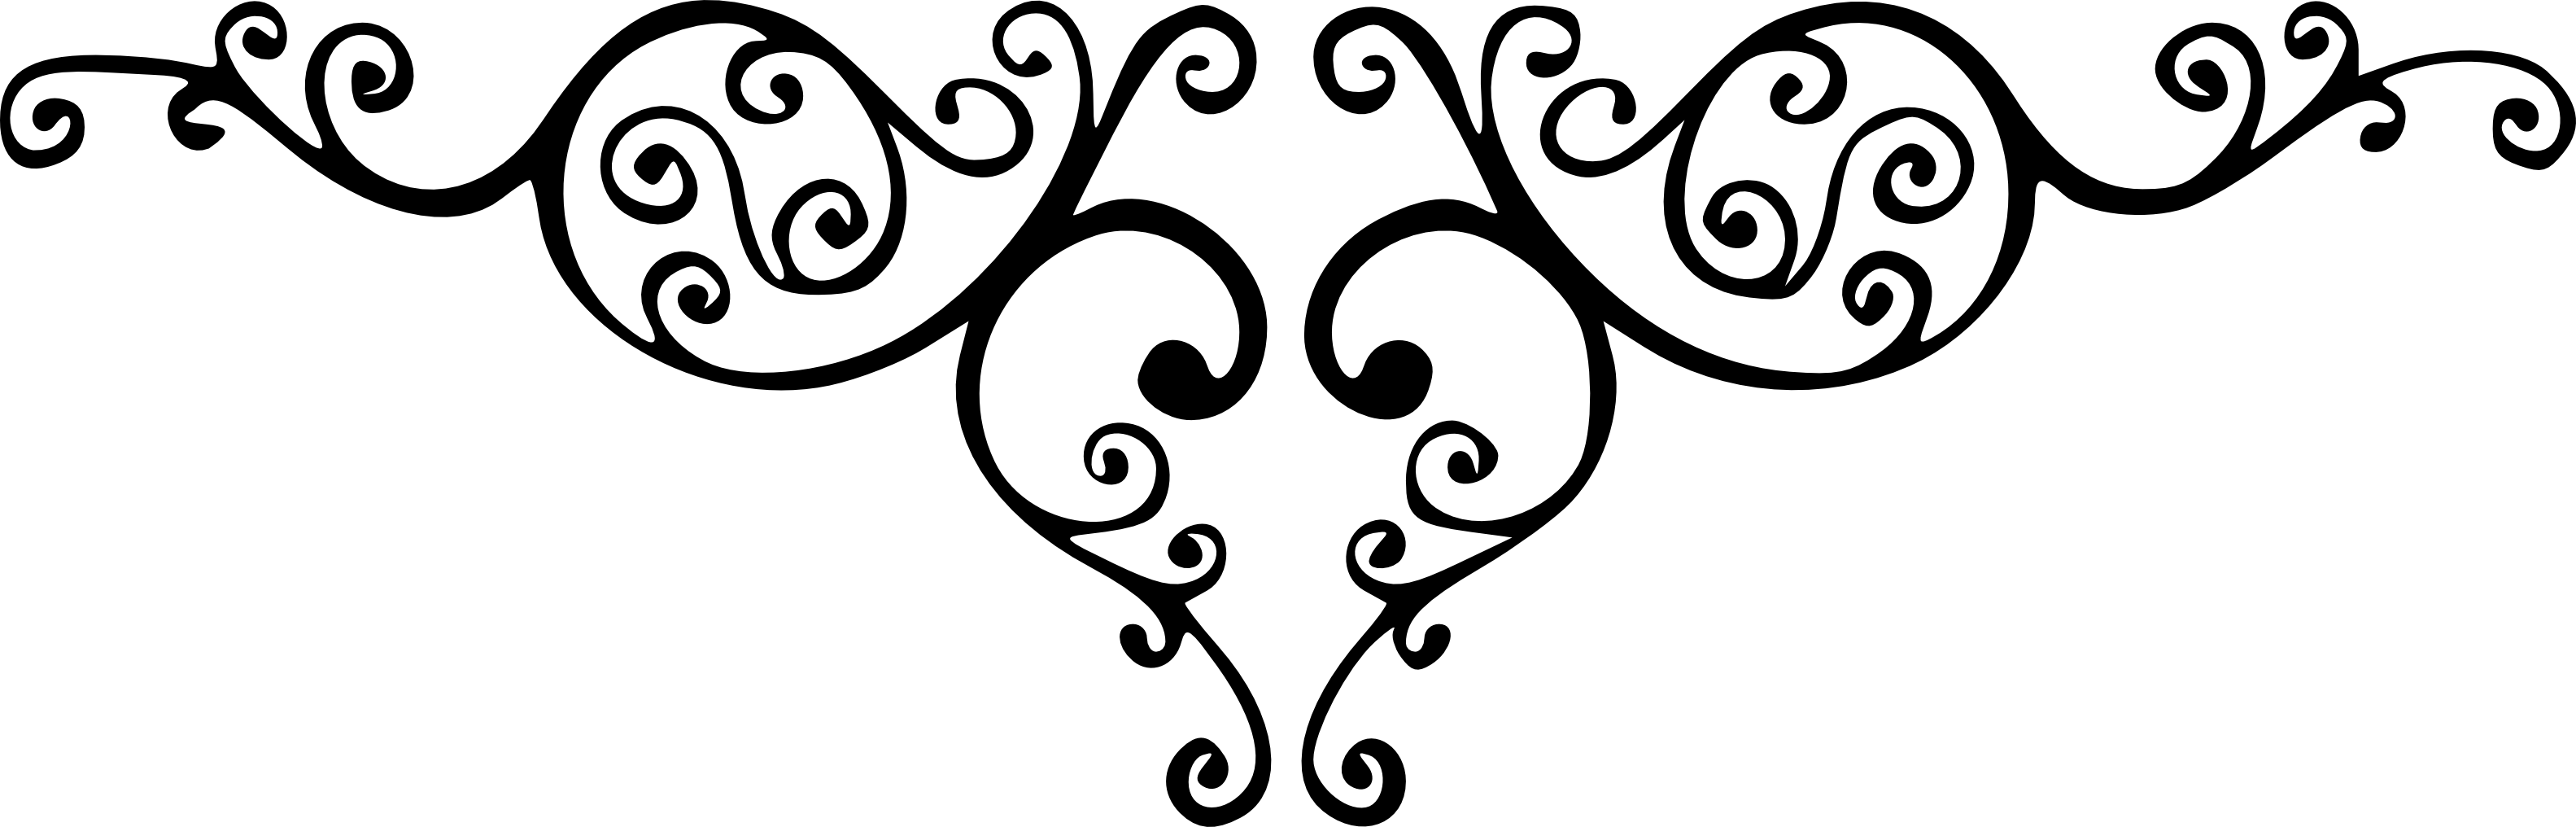 Filigree divider clip art. Clipart wedding design